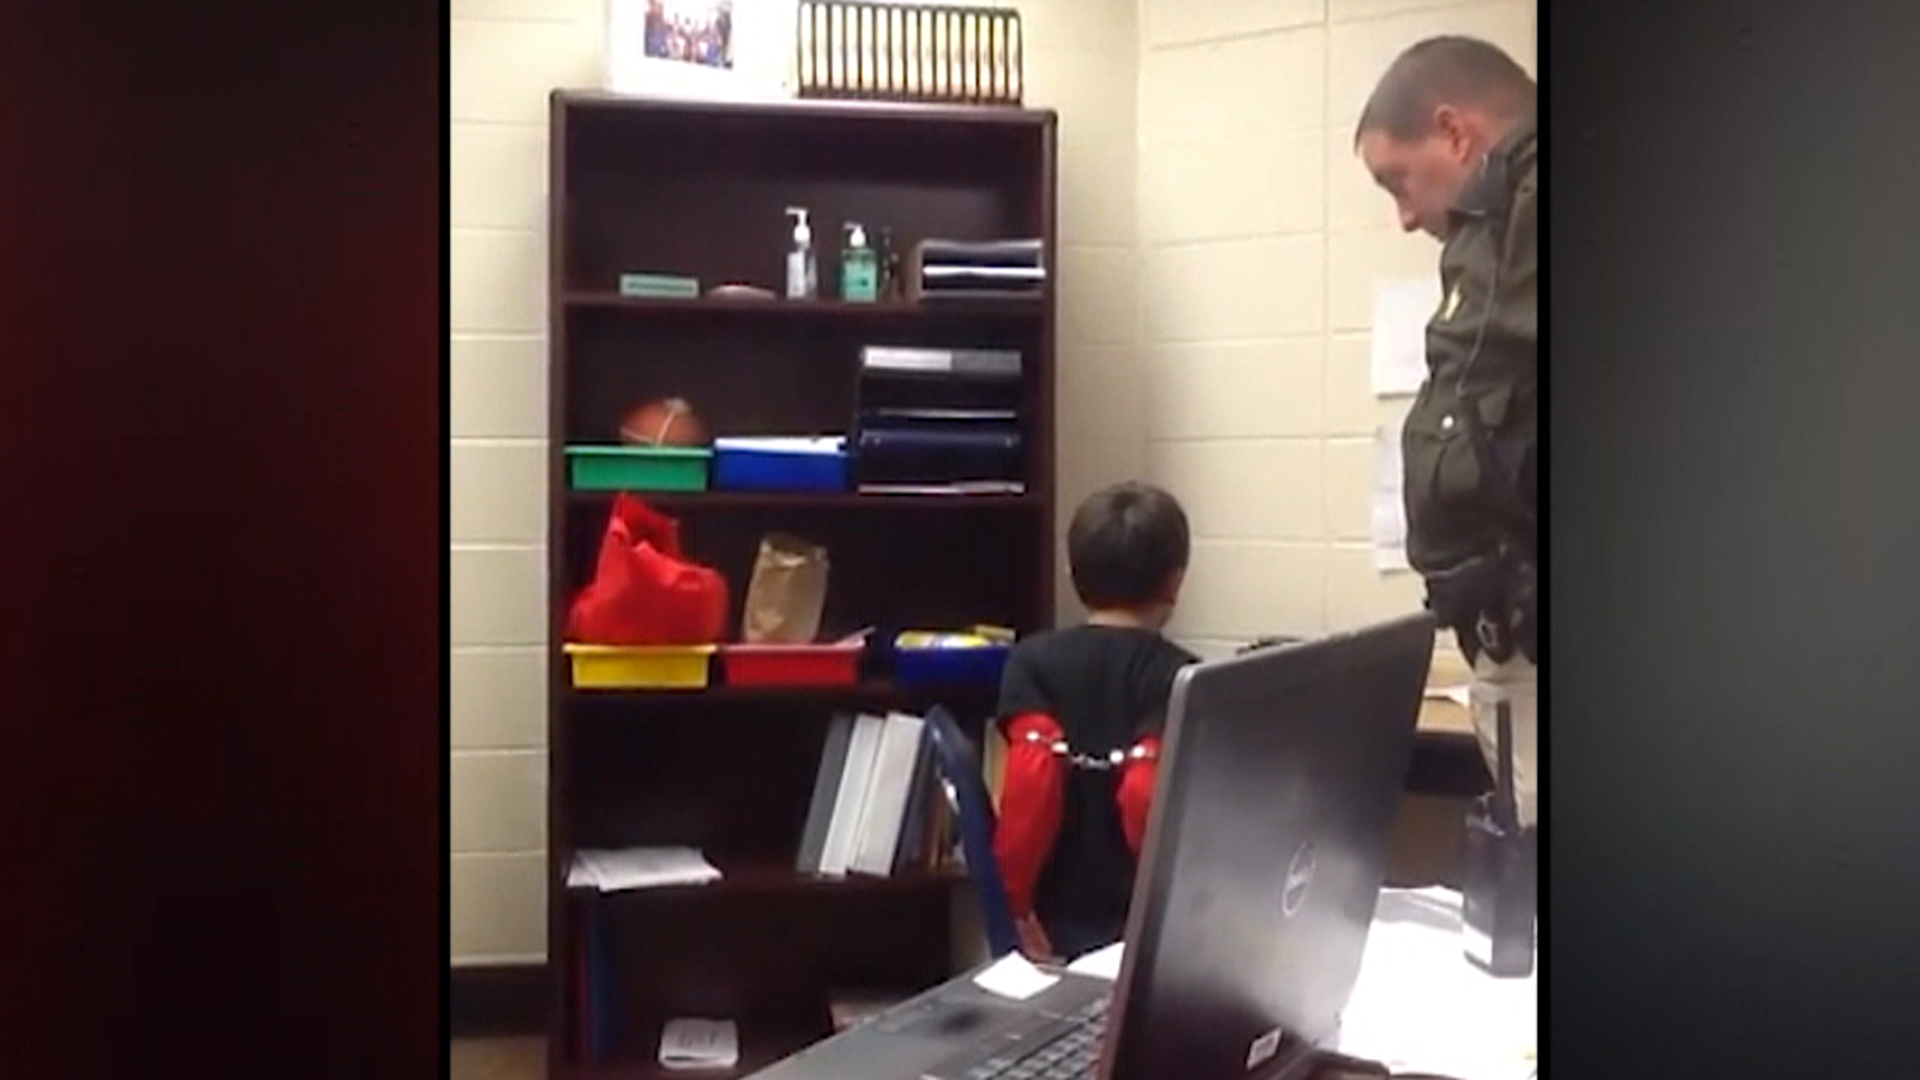 Police Officer Girl Wallpaper Video Emerges Of Boy With Adhd 8 Handcuffed At School